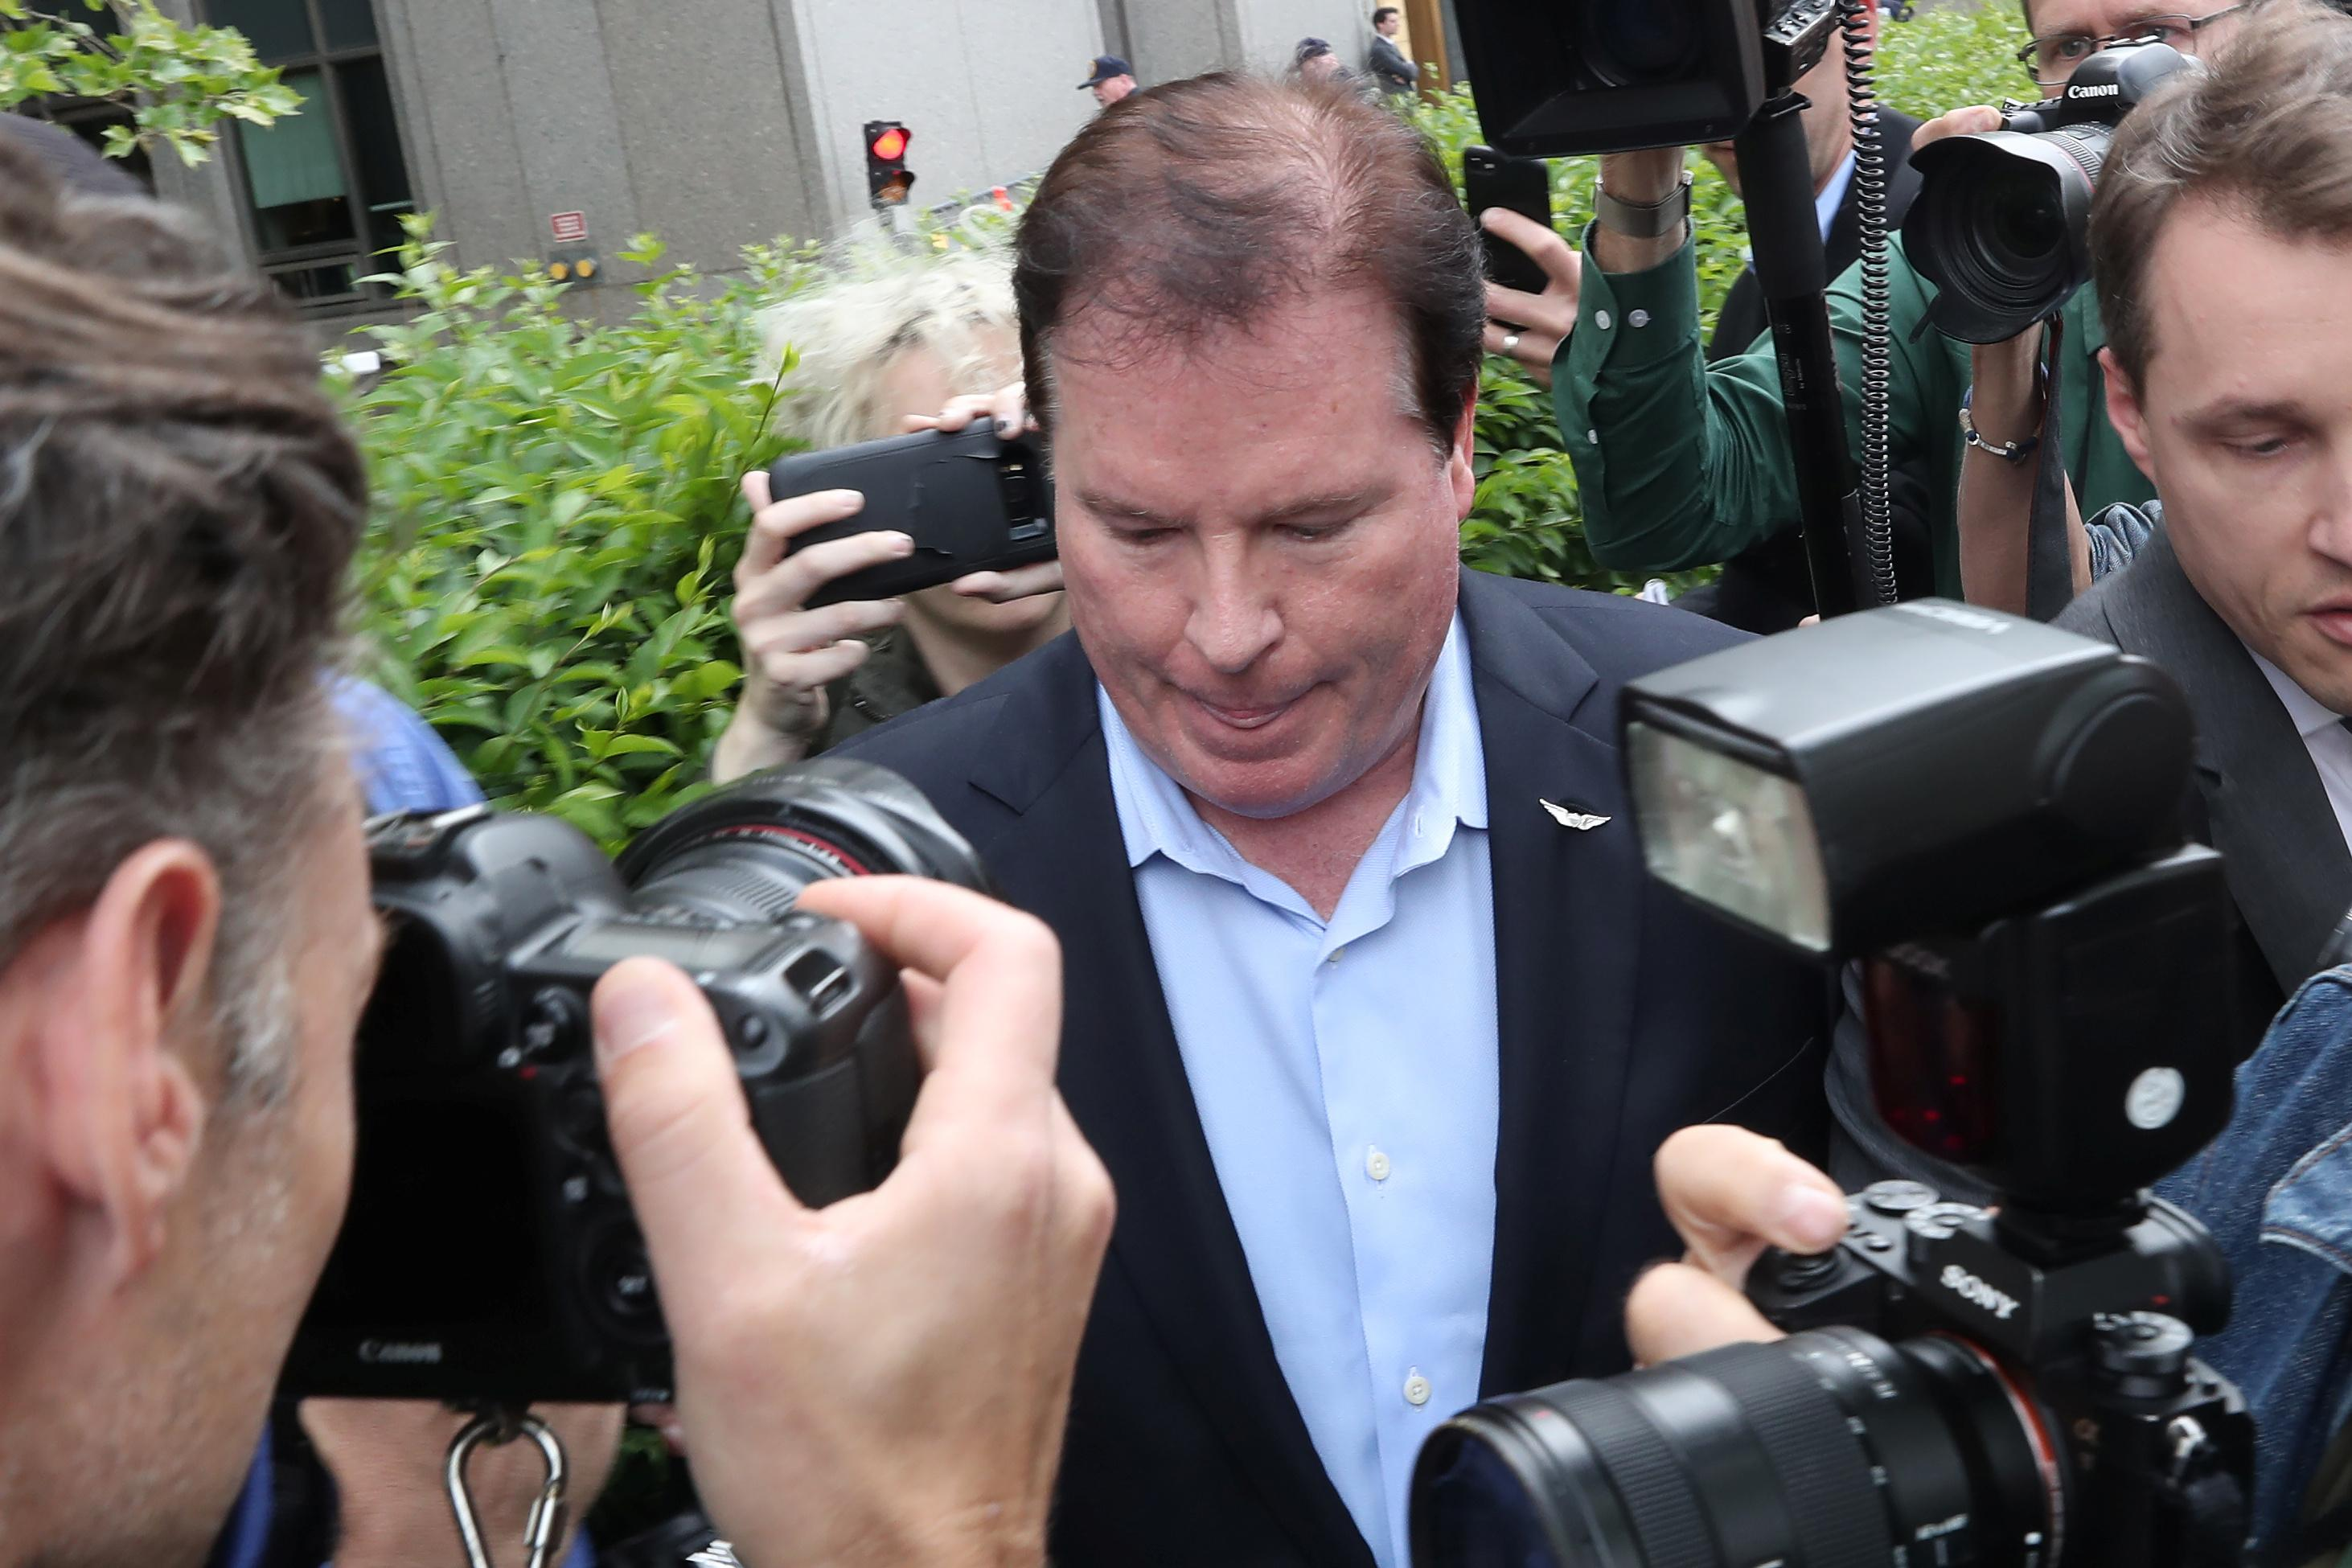 Stephen Calk, CEO of The Federal Bank of Chicago, leaves Manhattan Federal Court in New York, U.S., May 23, 2019. Shannon Stapleton